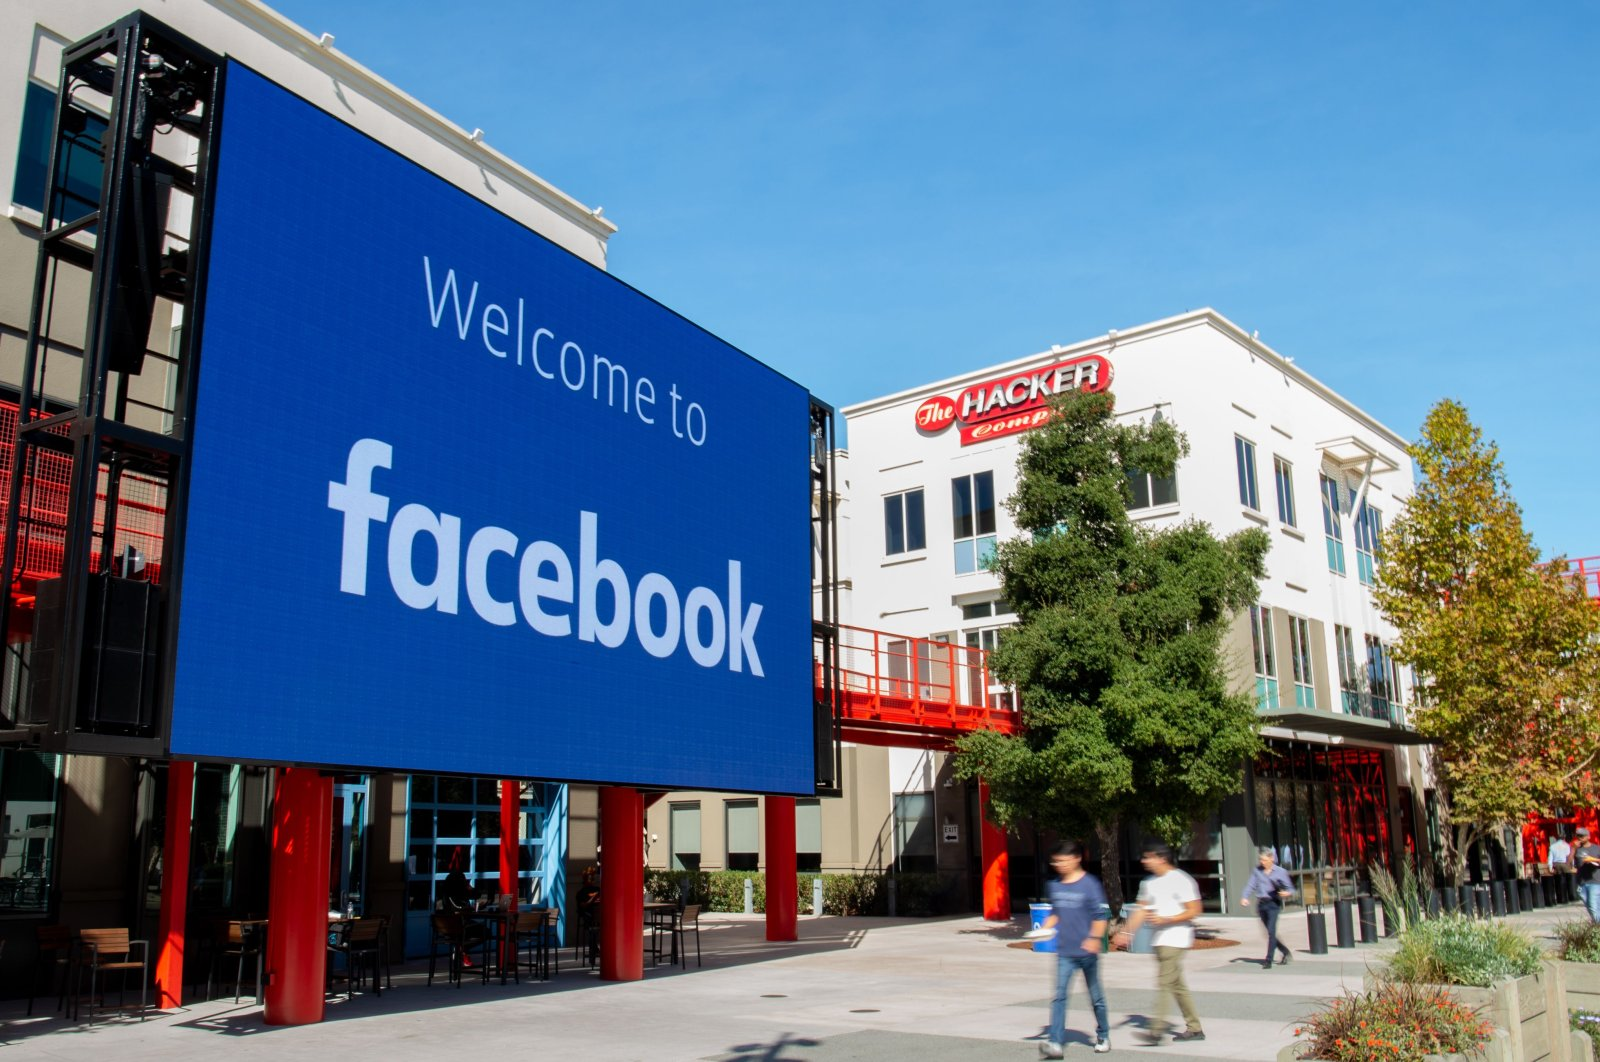 A giant digital sign is seen at Facebook's corporate headquarters campus in California, U.S., Oct. 23, 2019. (AFP Photo)